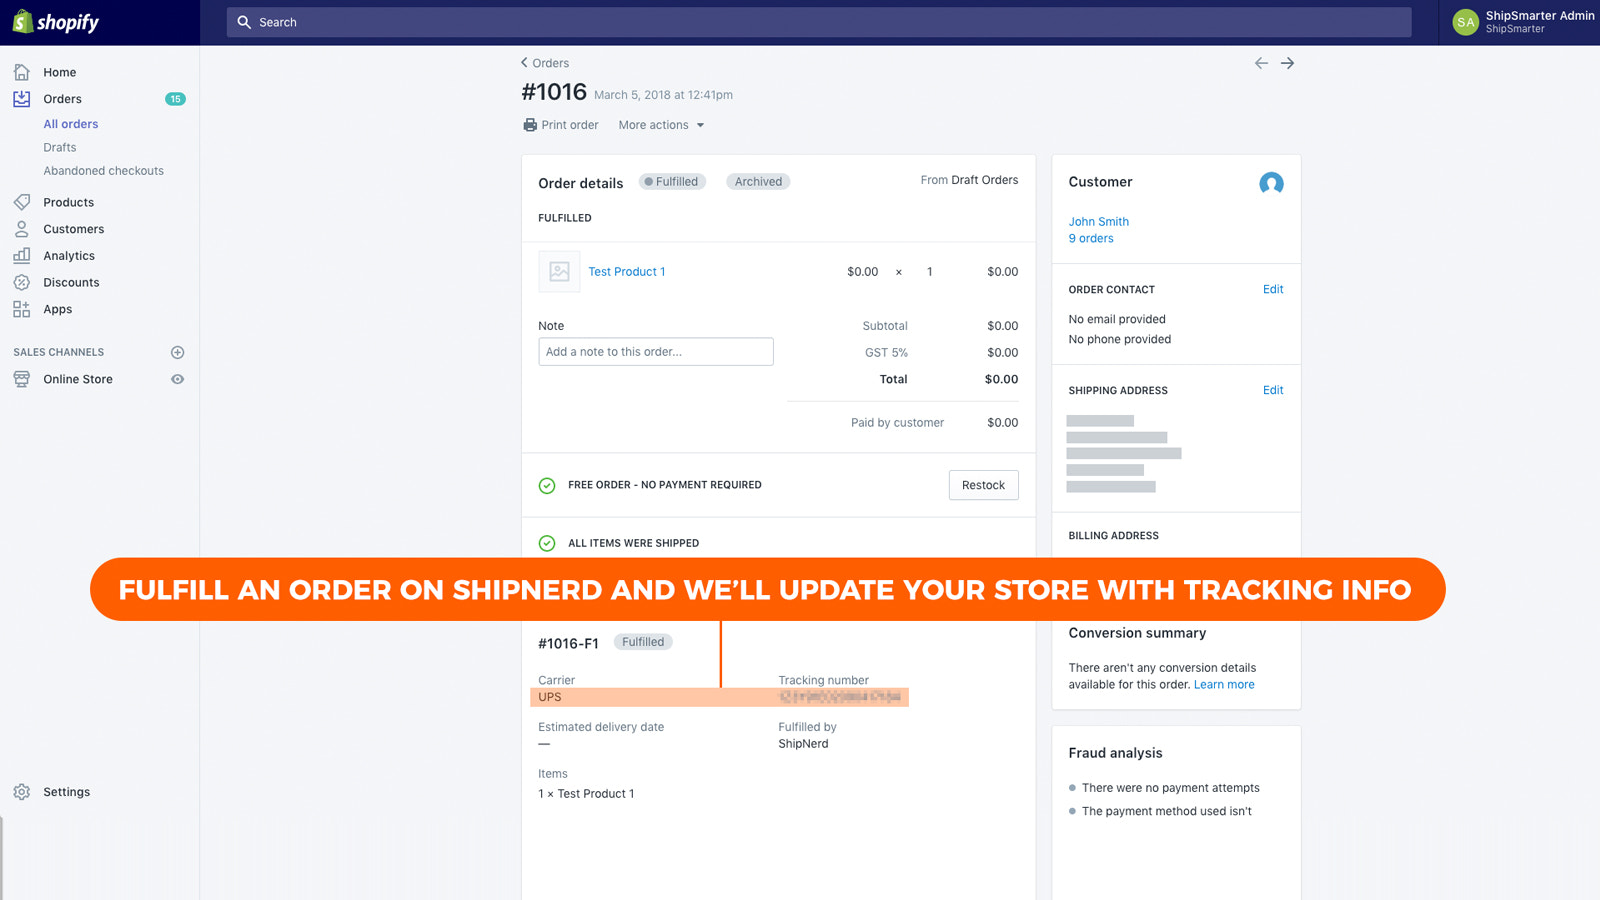 Your store updated with tracking info